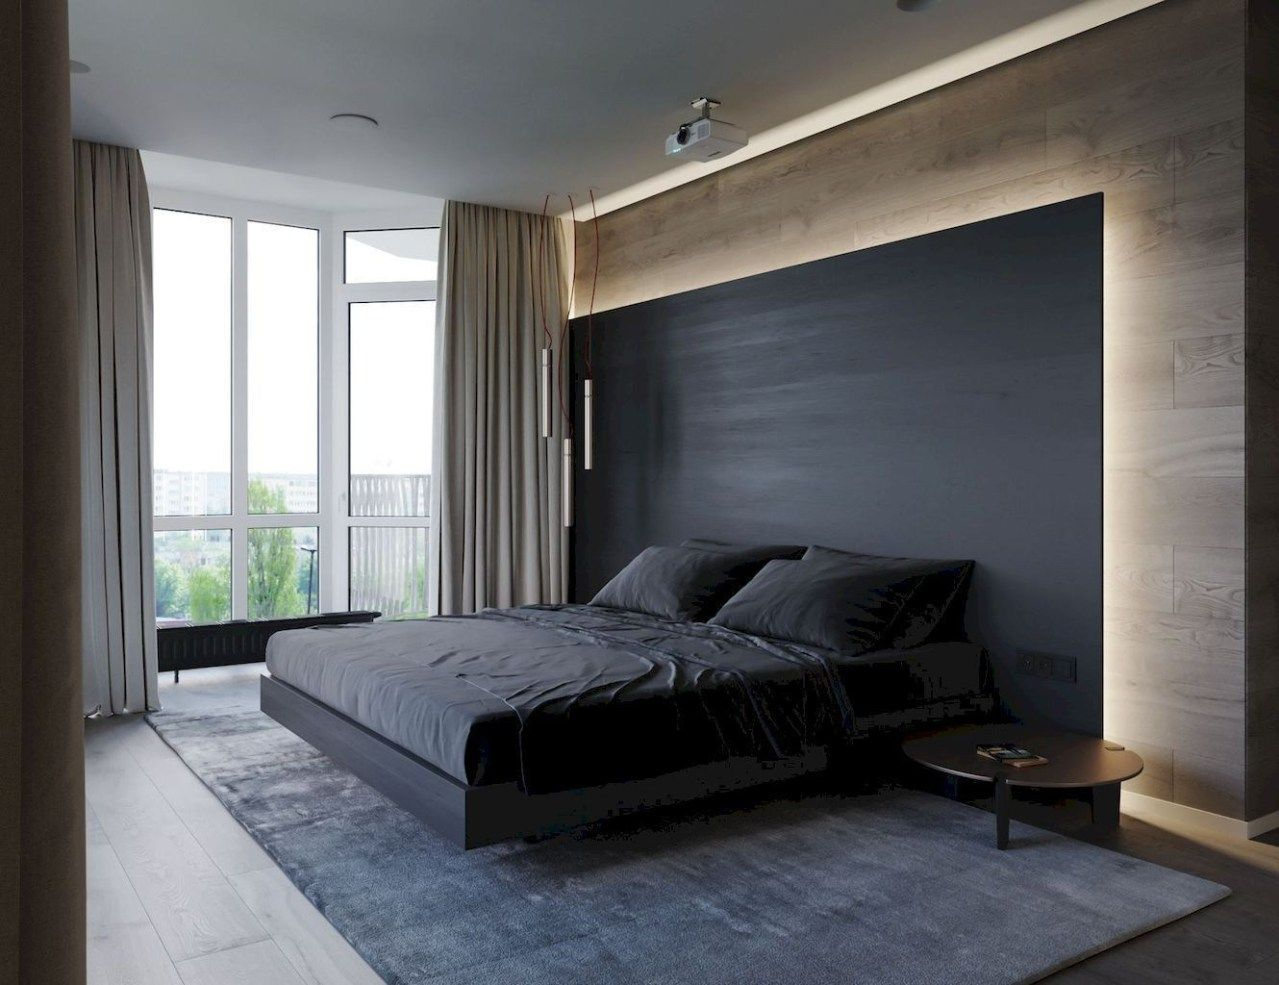 5 The Best Modern Bedroom Designs That Trend in This Year